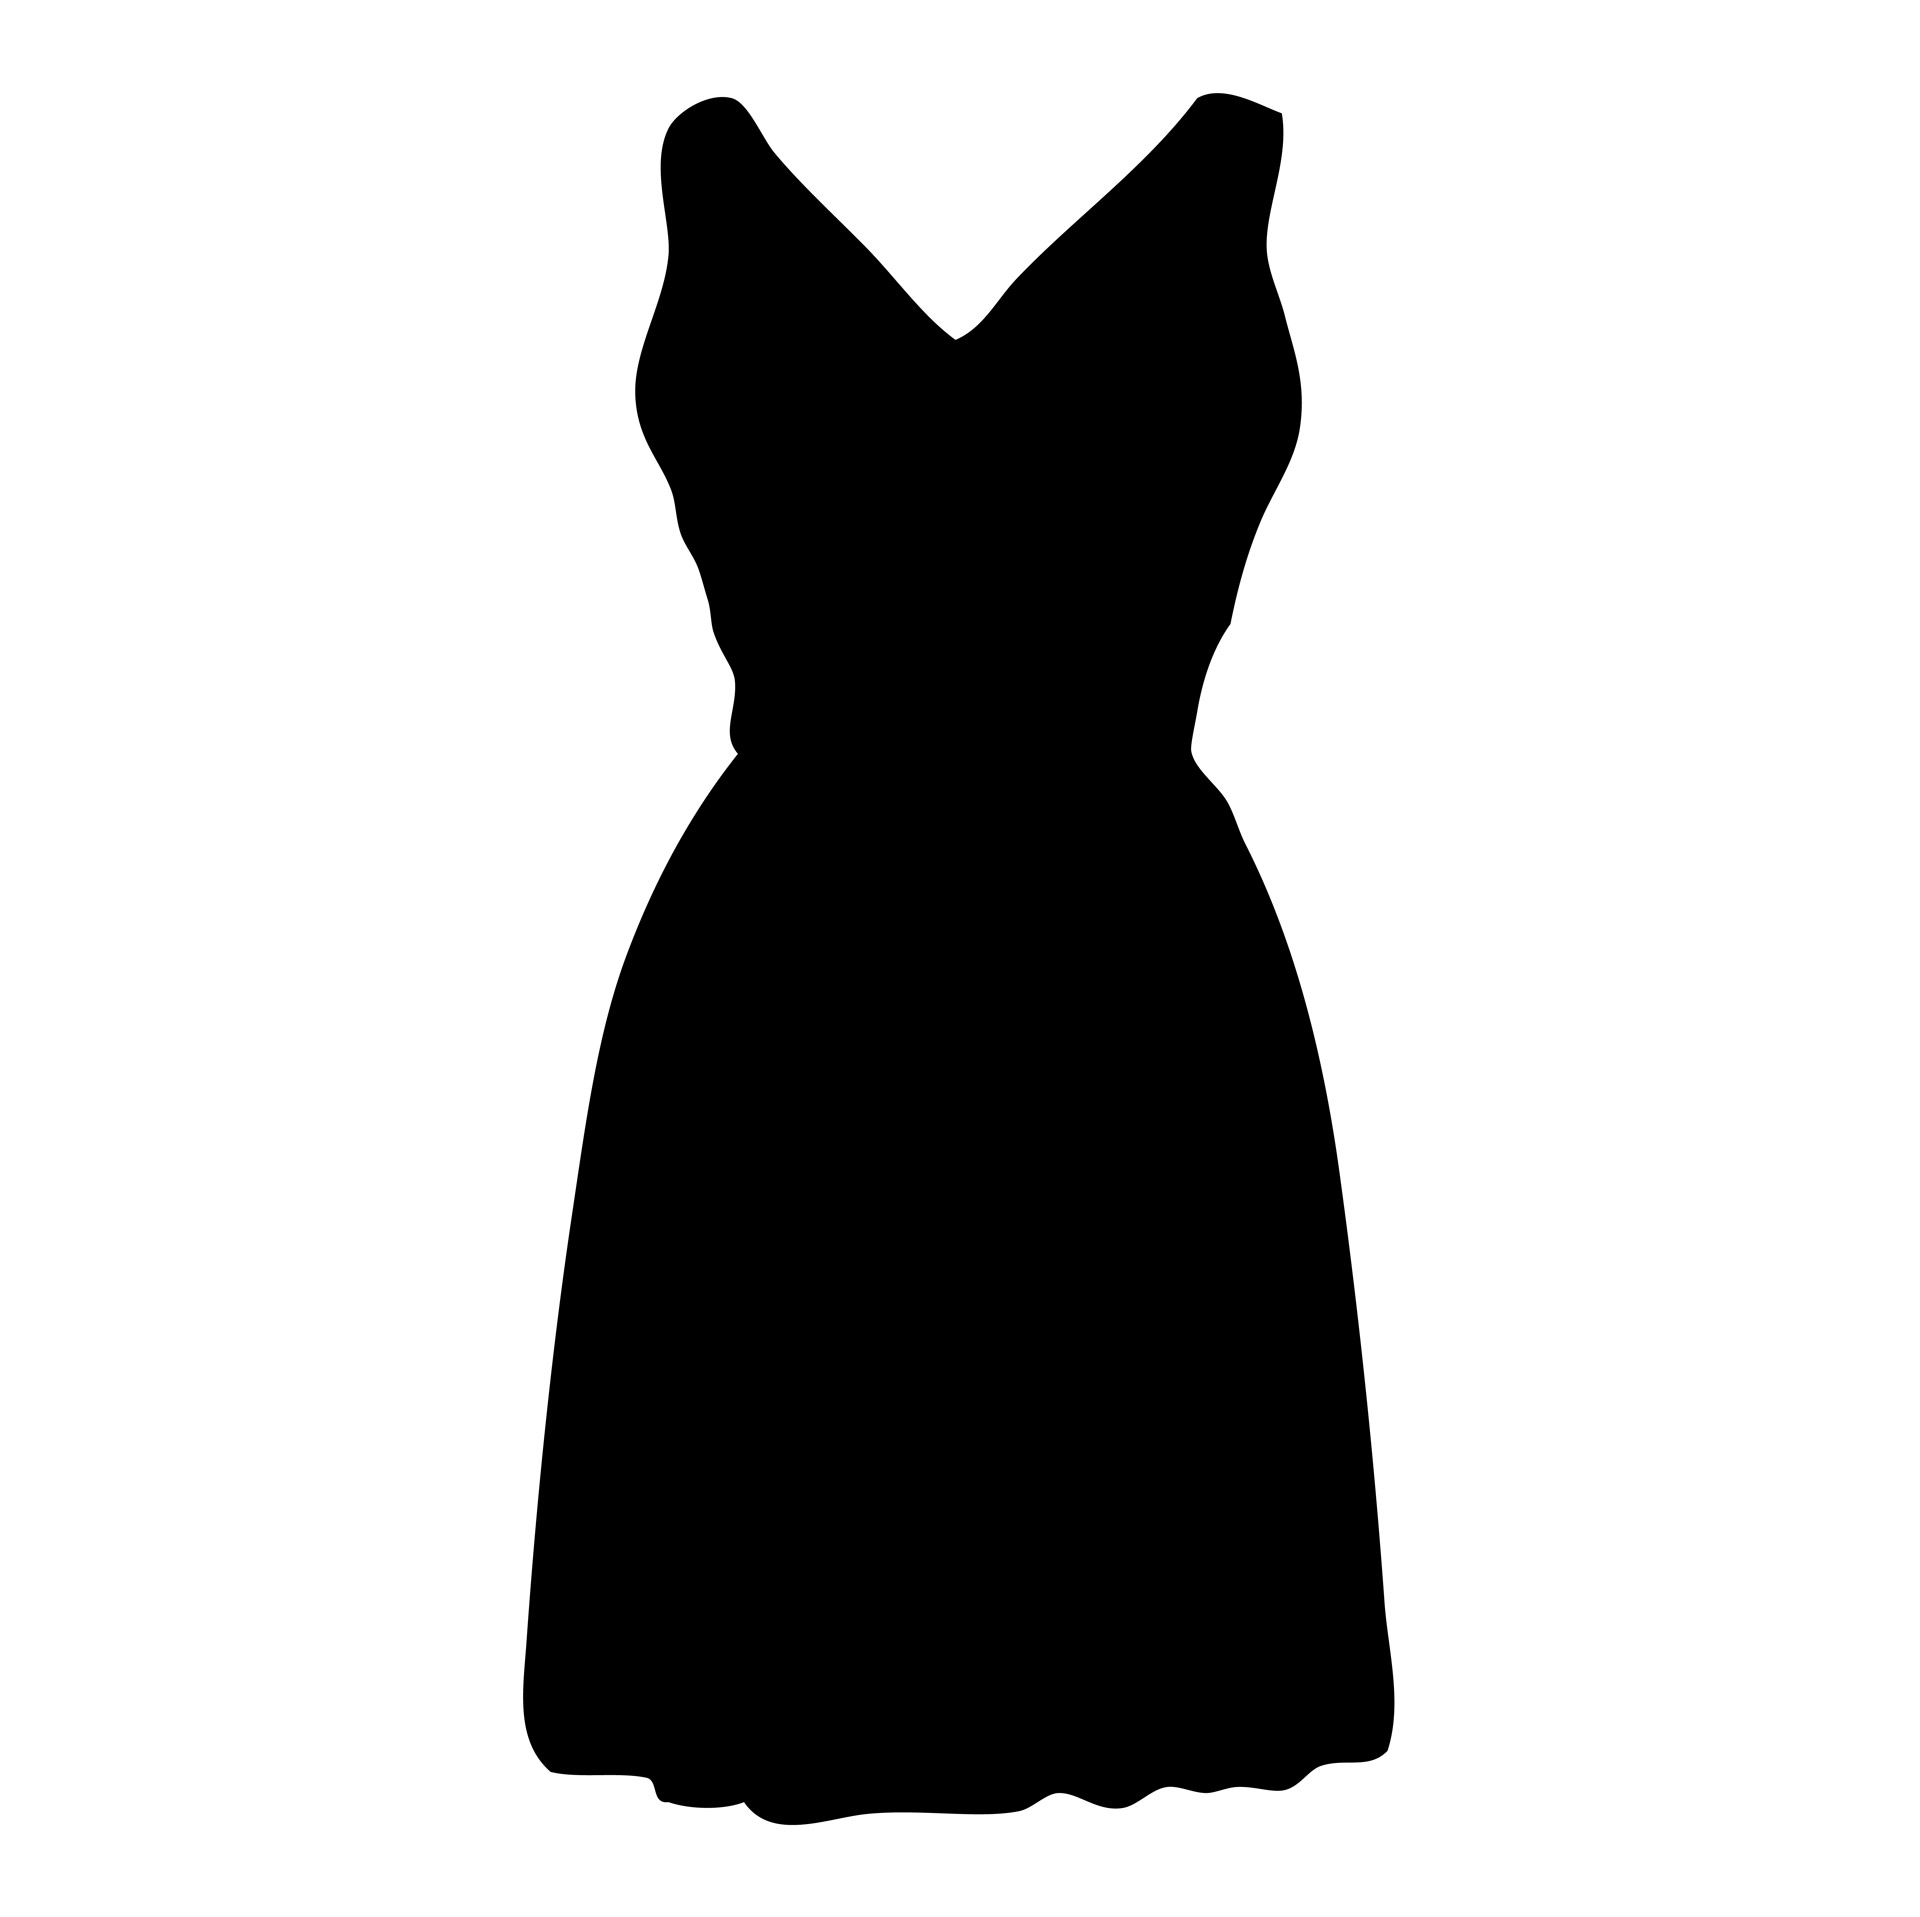 Dress clipart american traditional Images  Art Pictures Black